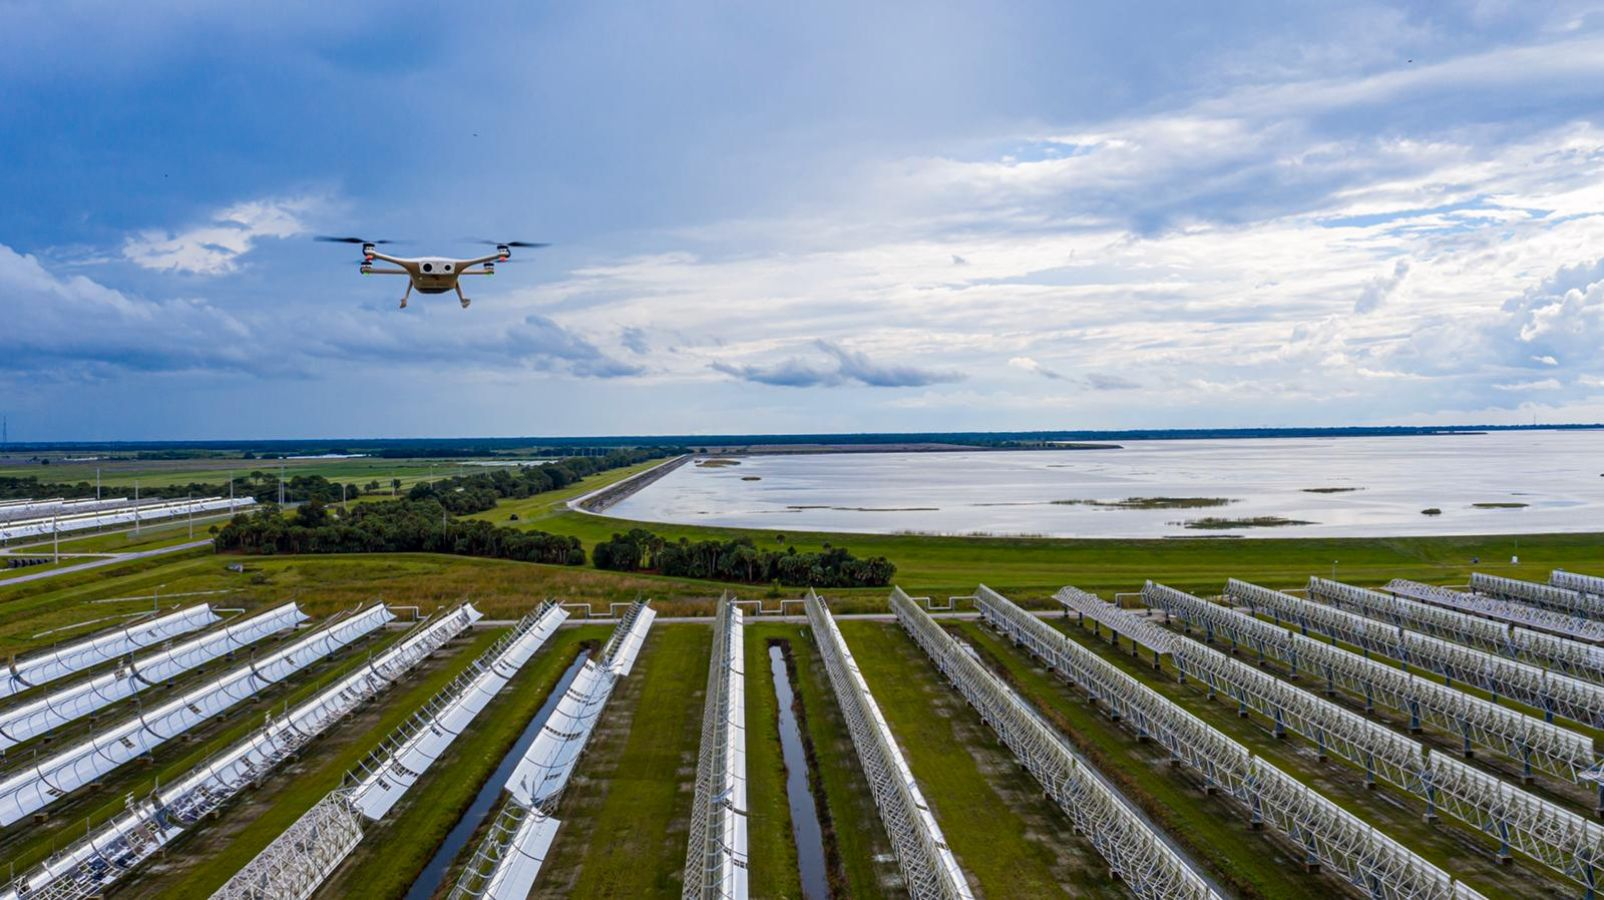 Tech To Rescue: Drones Help Repair Power Grids After Florida Hurricanes